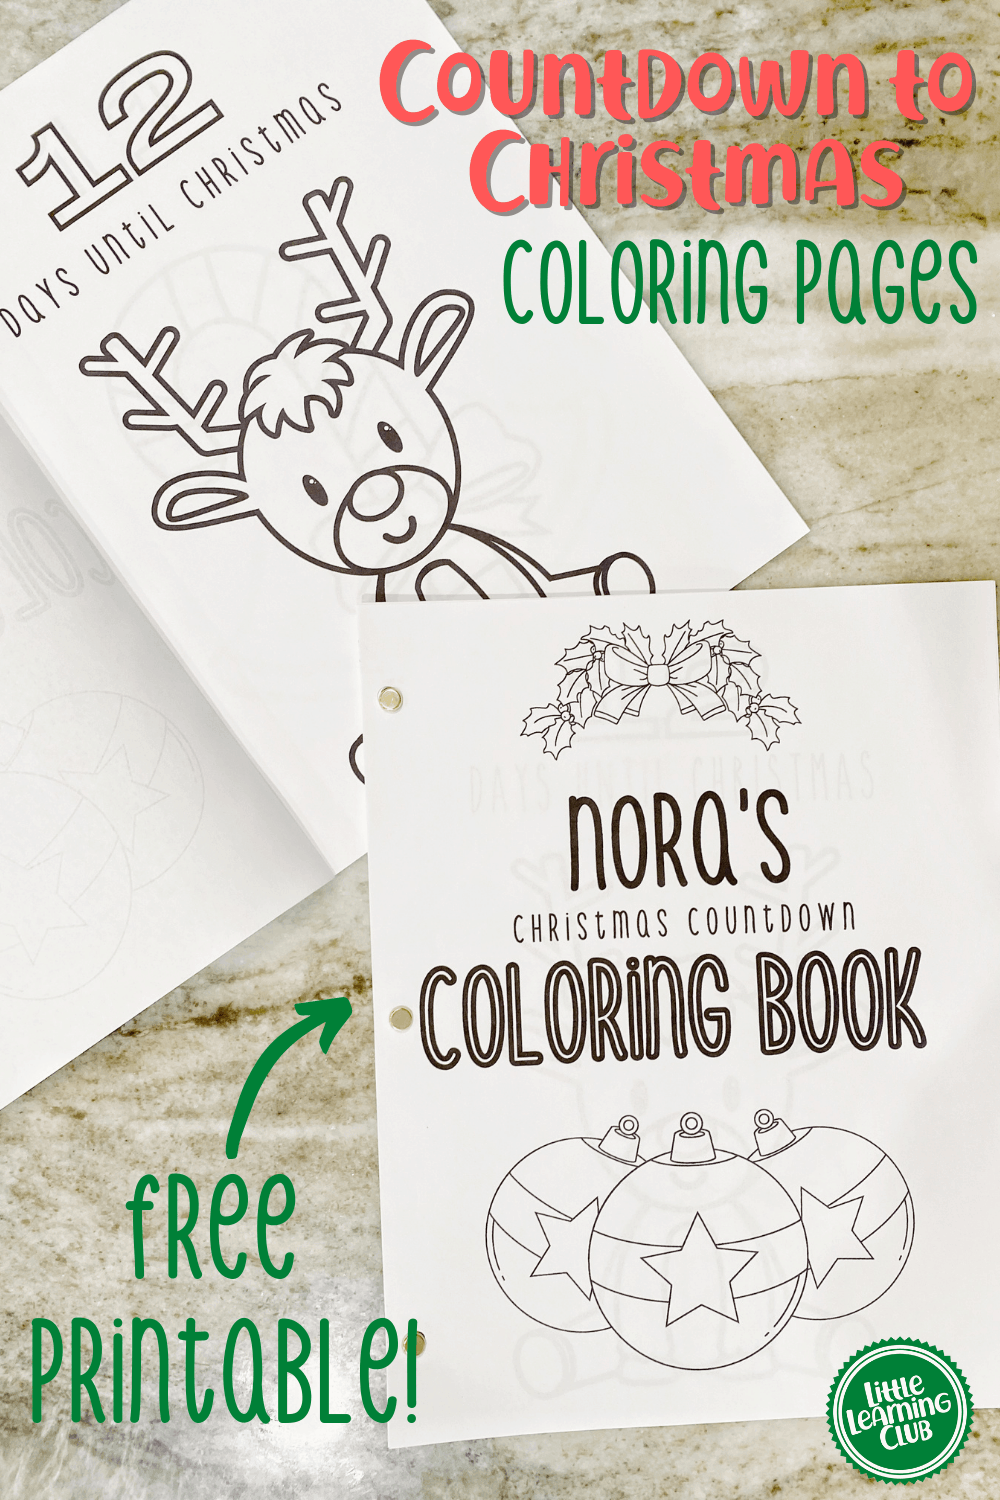 12 Pages Of Coloring Pages For Toddlers And Preschoolers Free Download Free Christmas Coloring Pages Coloring Pages Christmas Coloring Pages